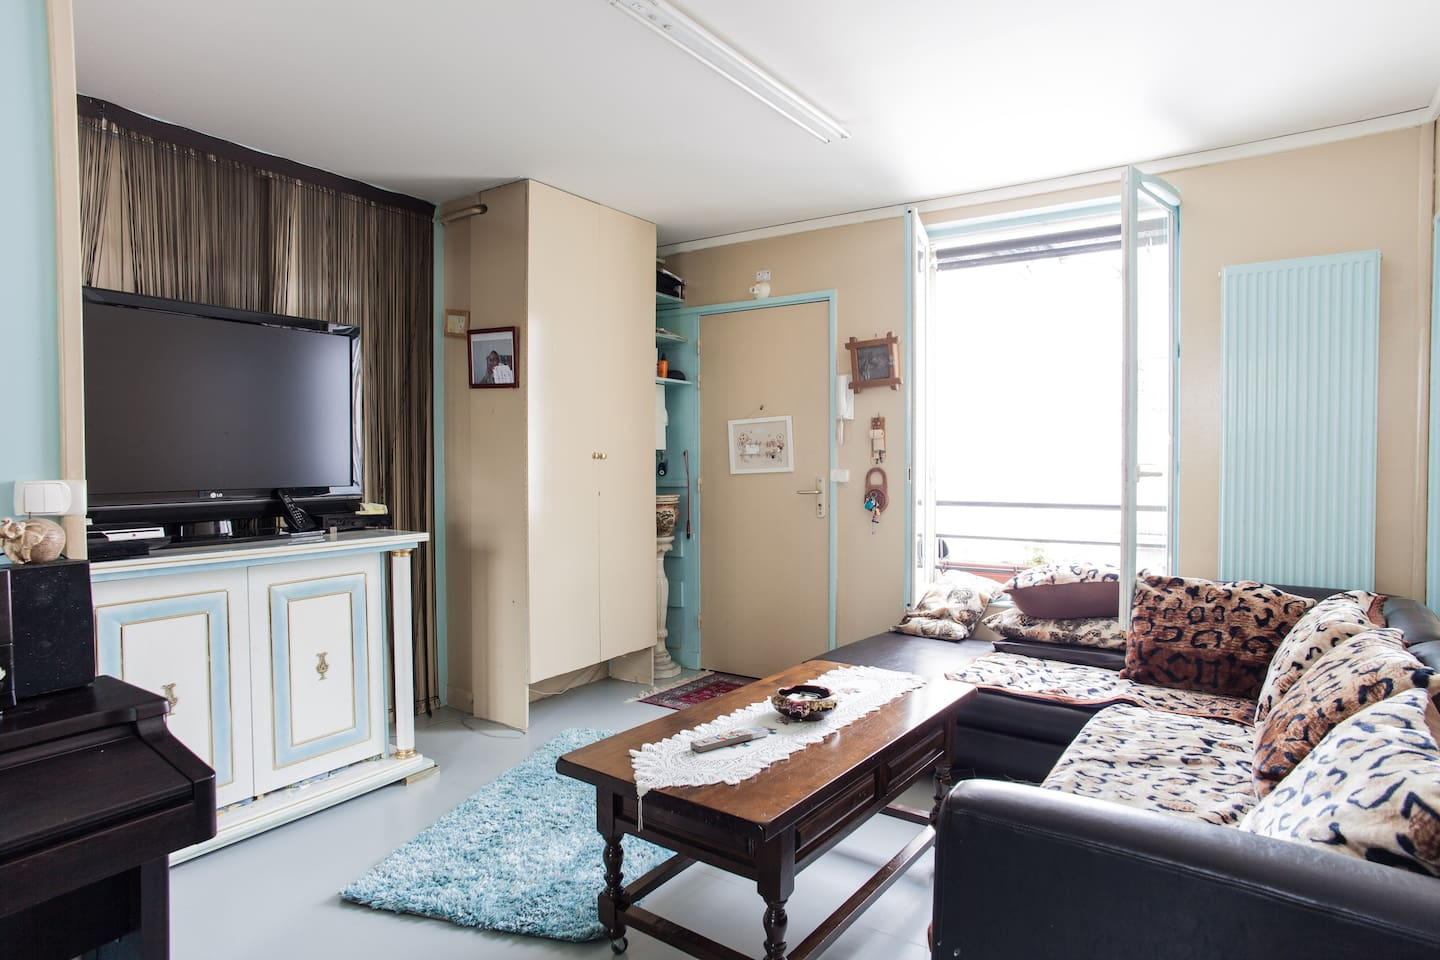 Flat in the very centre of paris